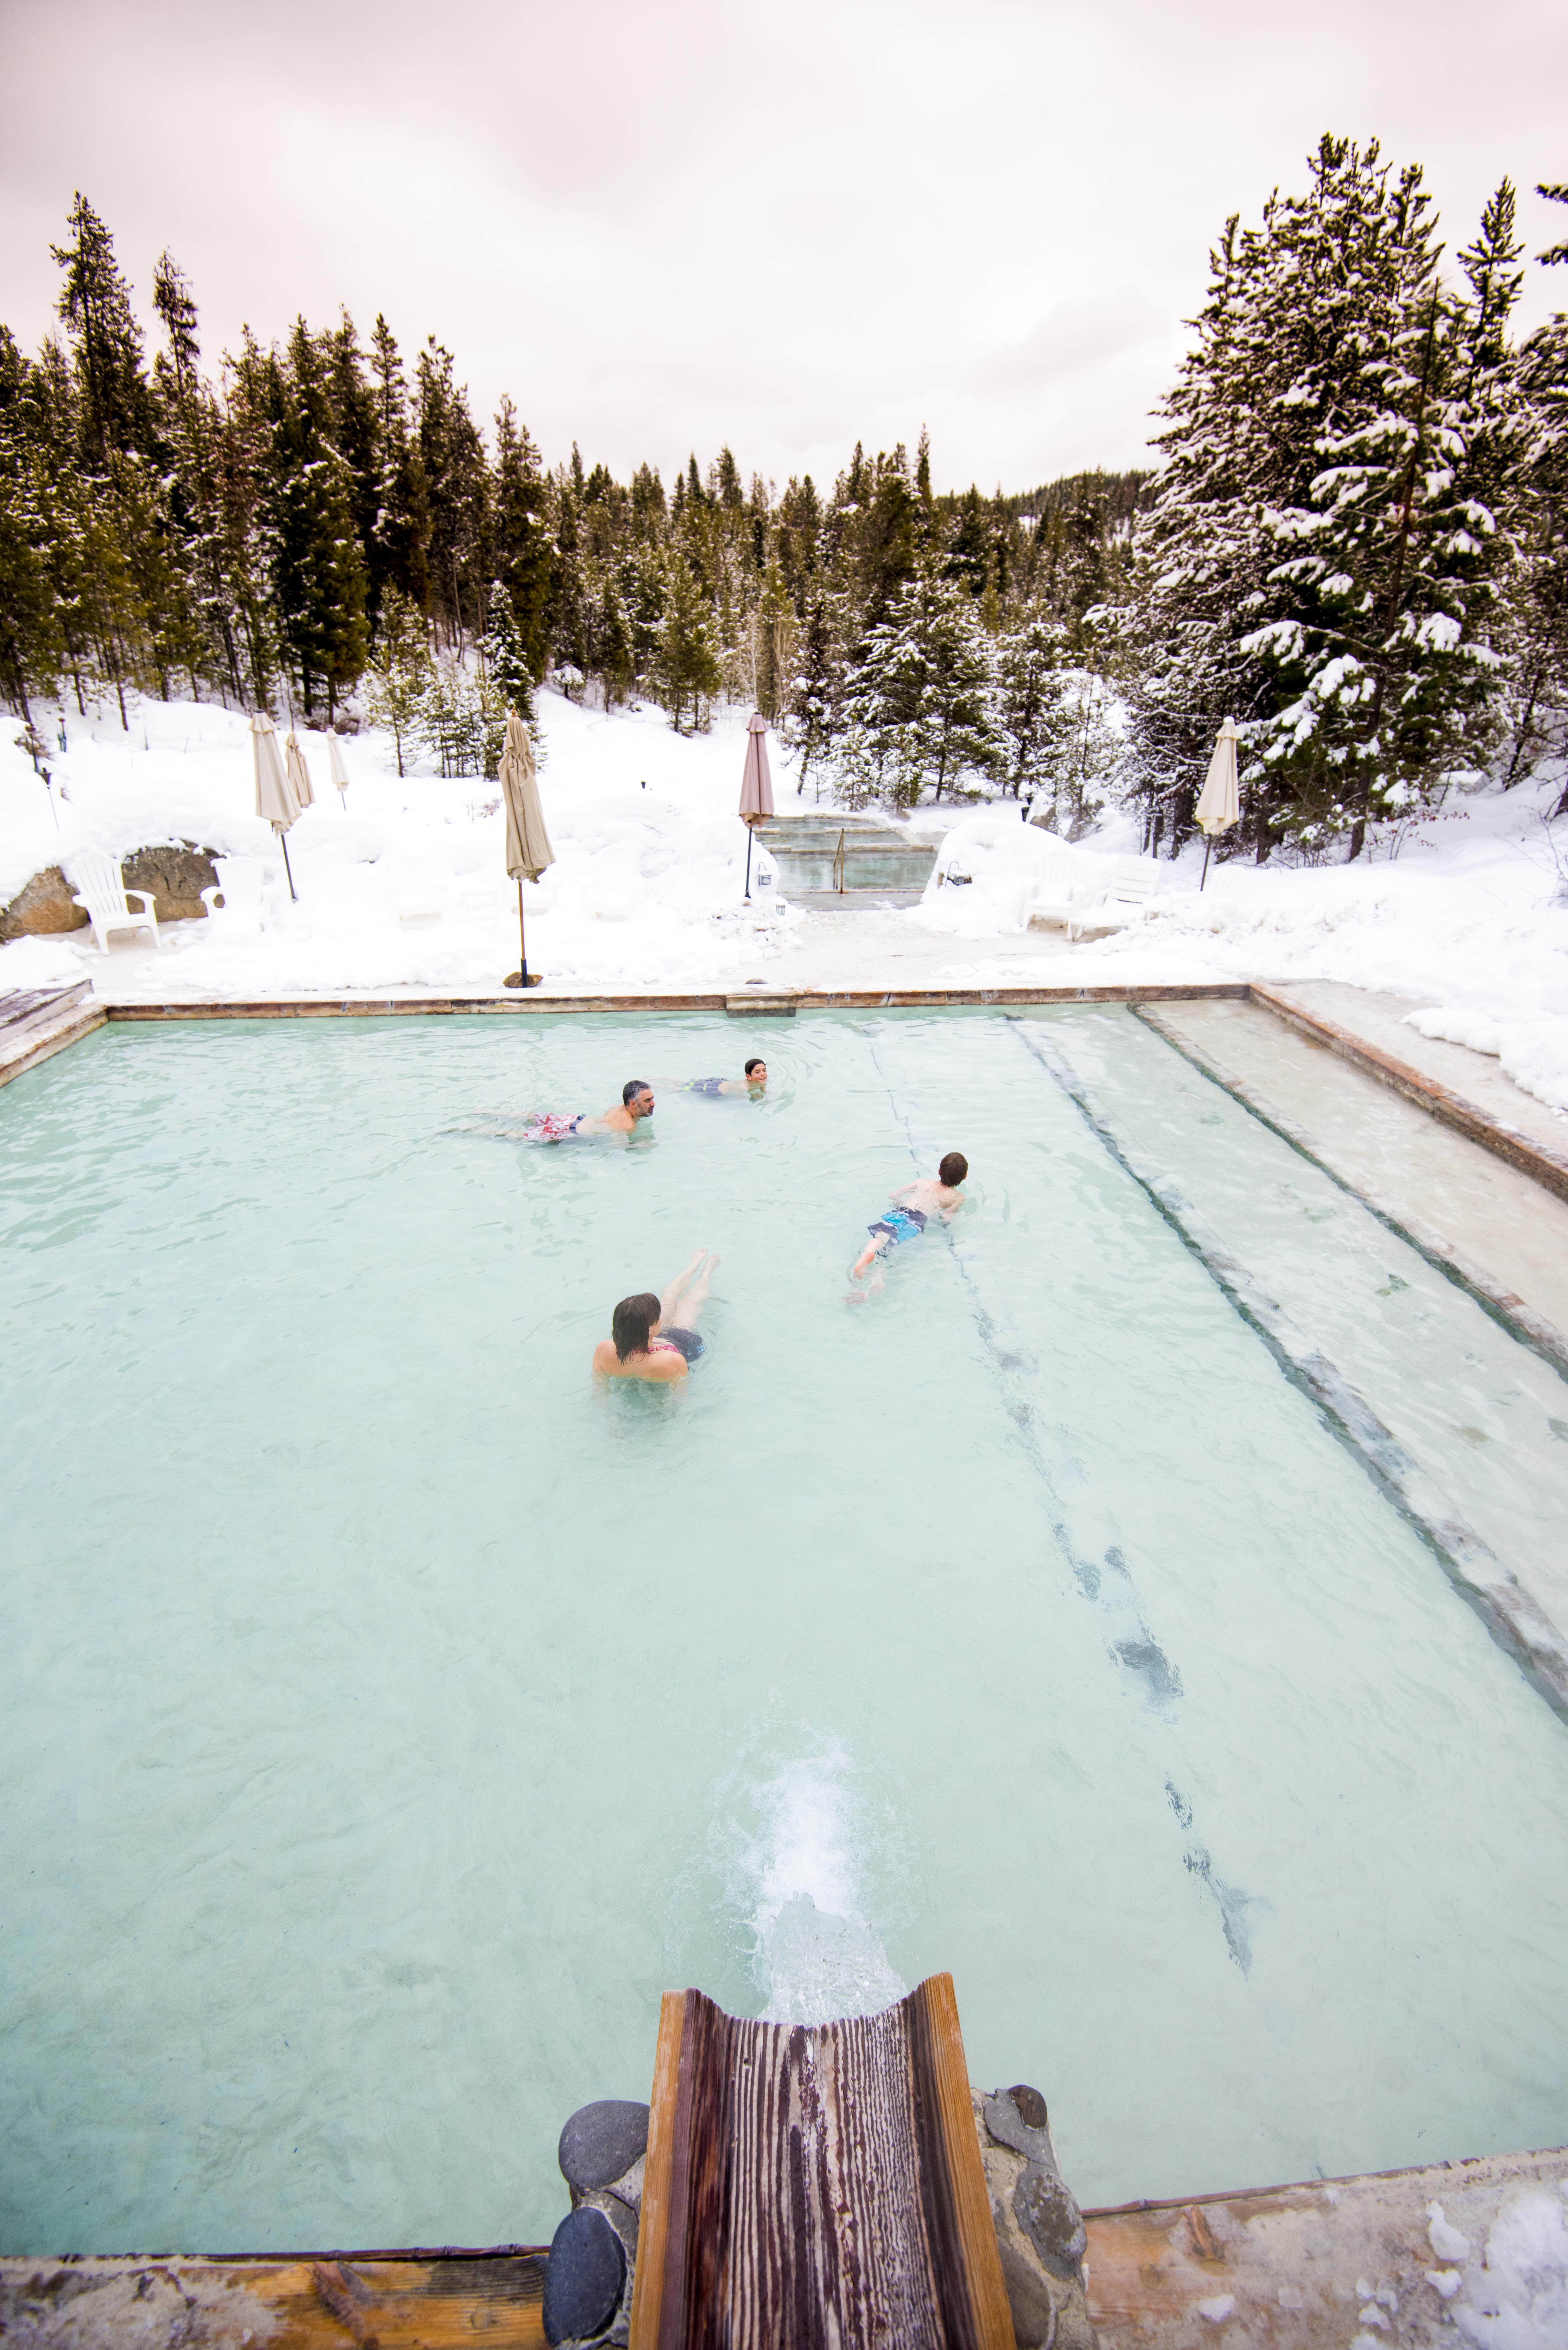 Gold Fork Hot Springs, near Donnelly. Photo Credit: Idaho Tourism.